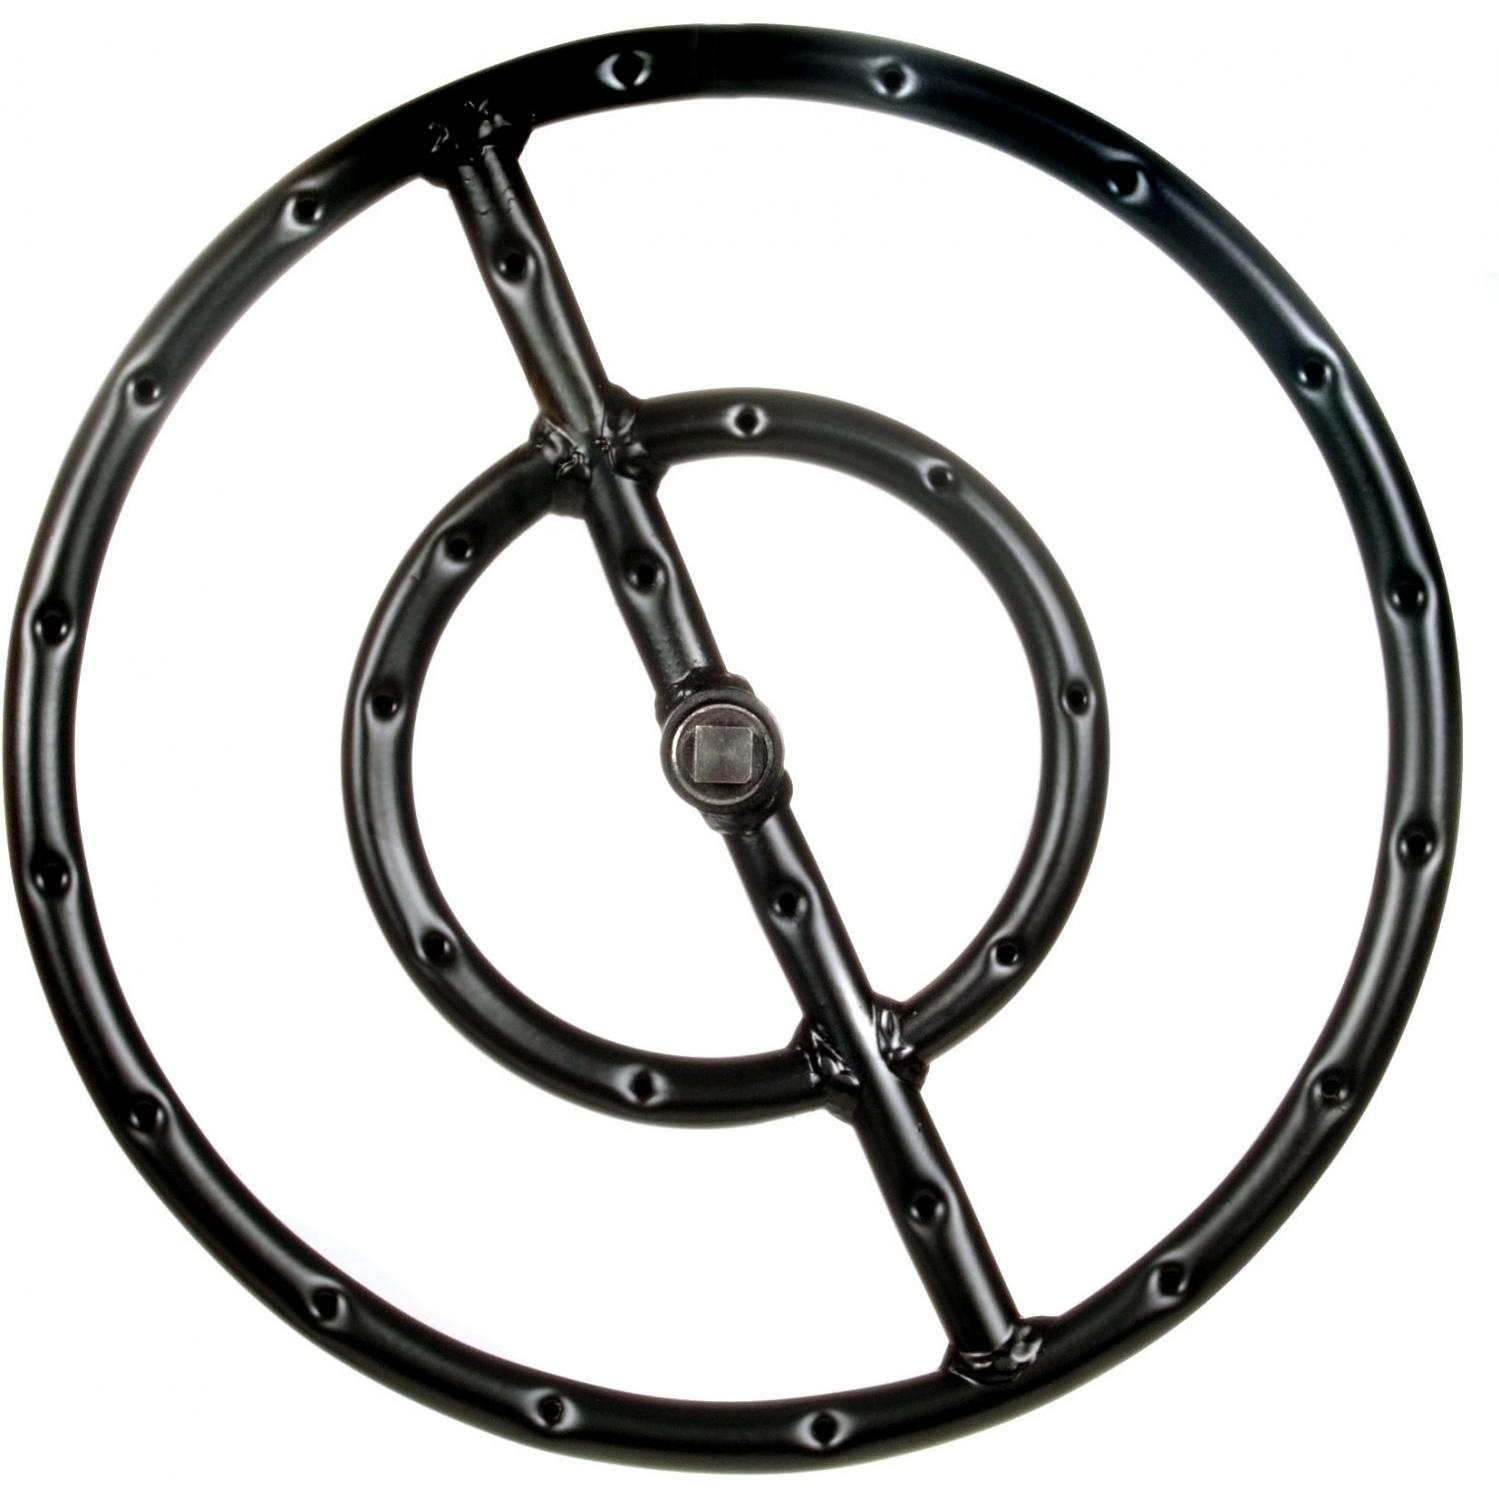 12 Inch Round Double Propane Fire Pit Ring